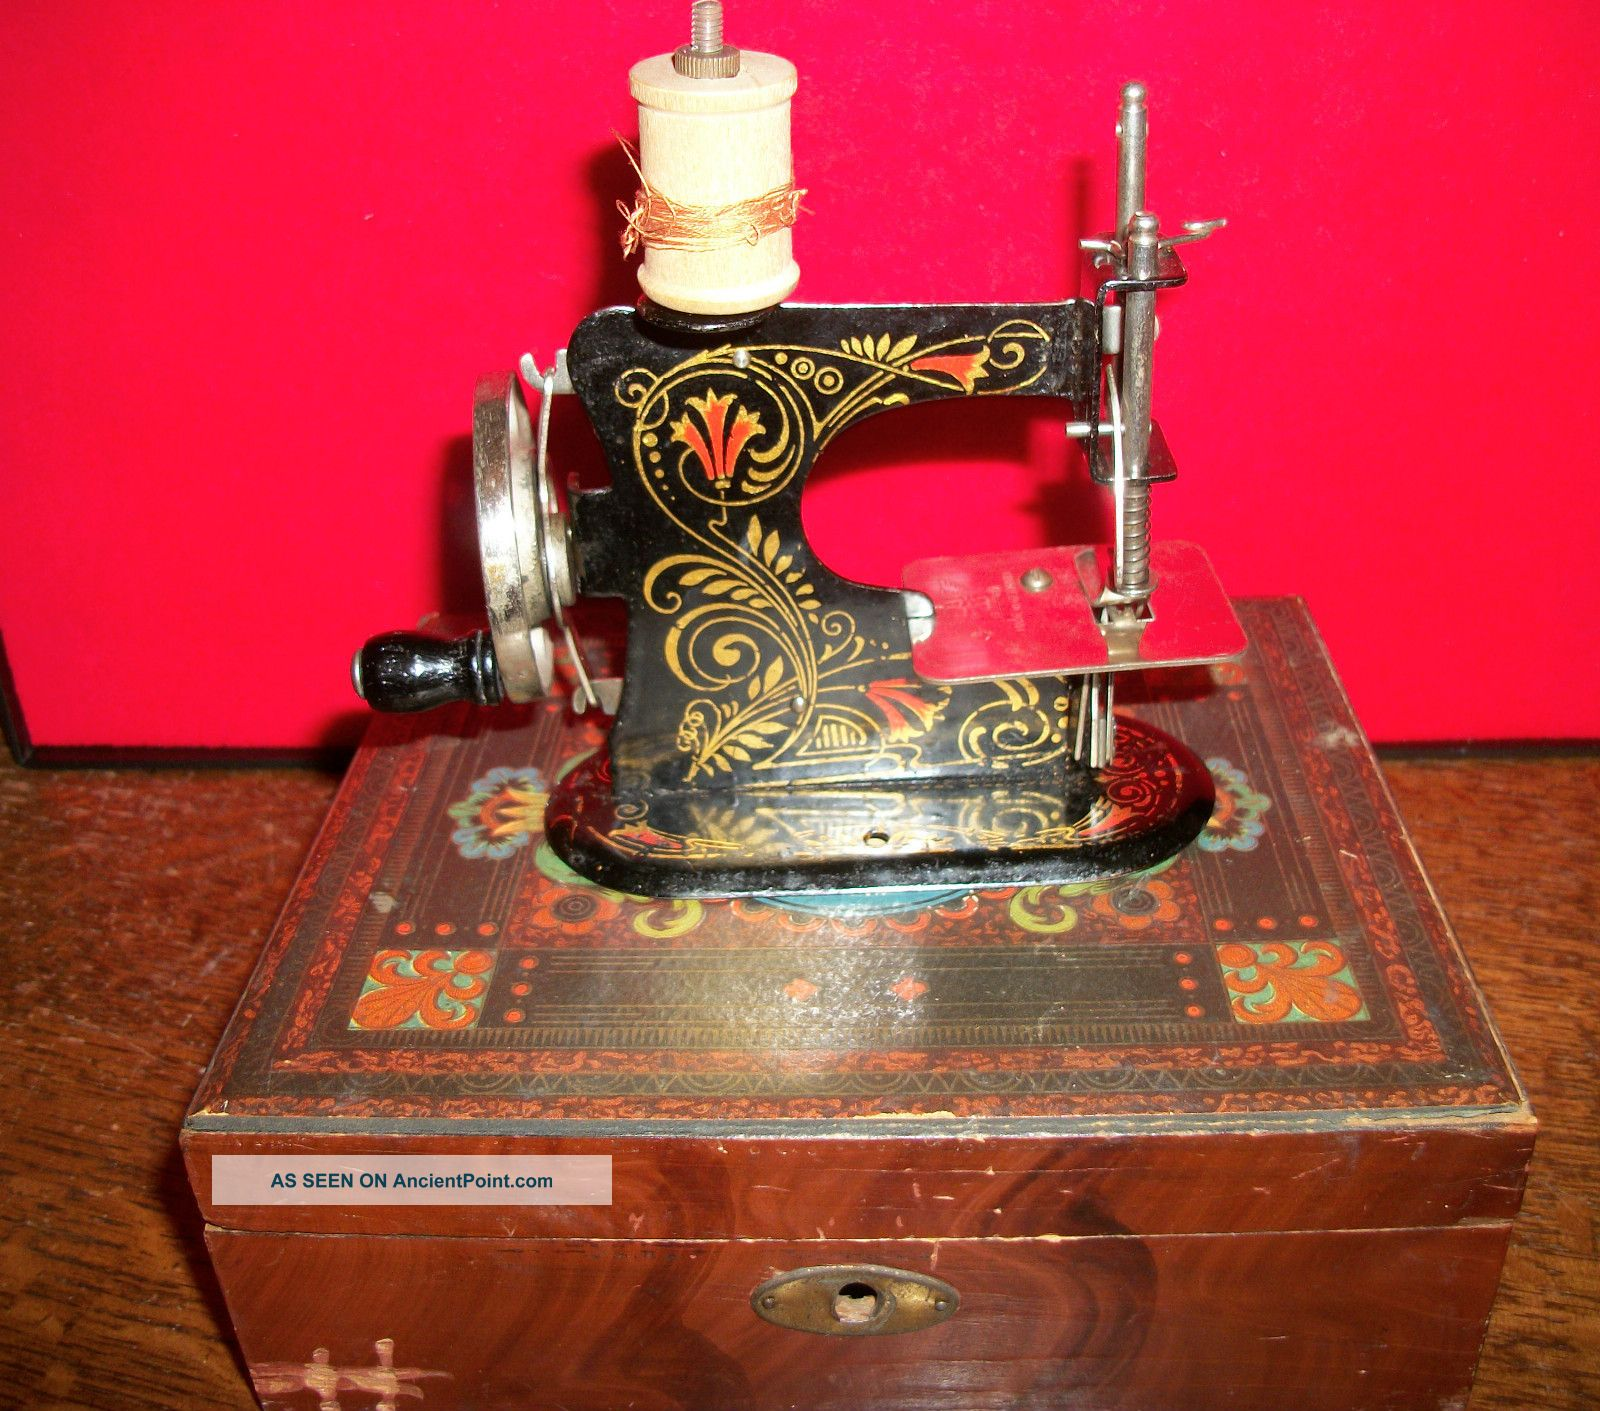 Rare Antique German Toy Sewing Machine In Victorian Era Box Sewing Machines photo